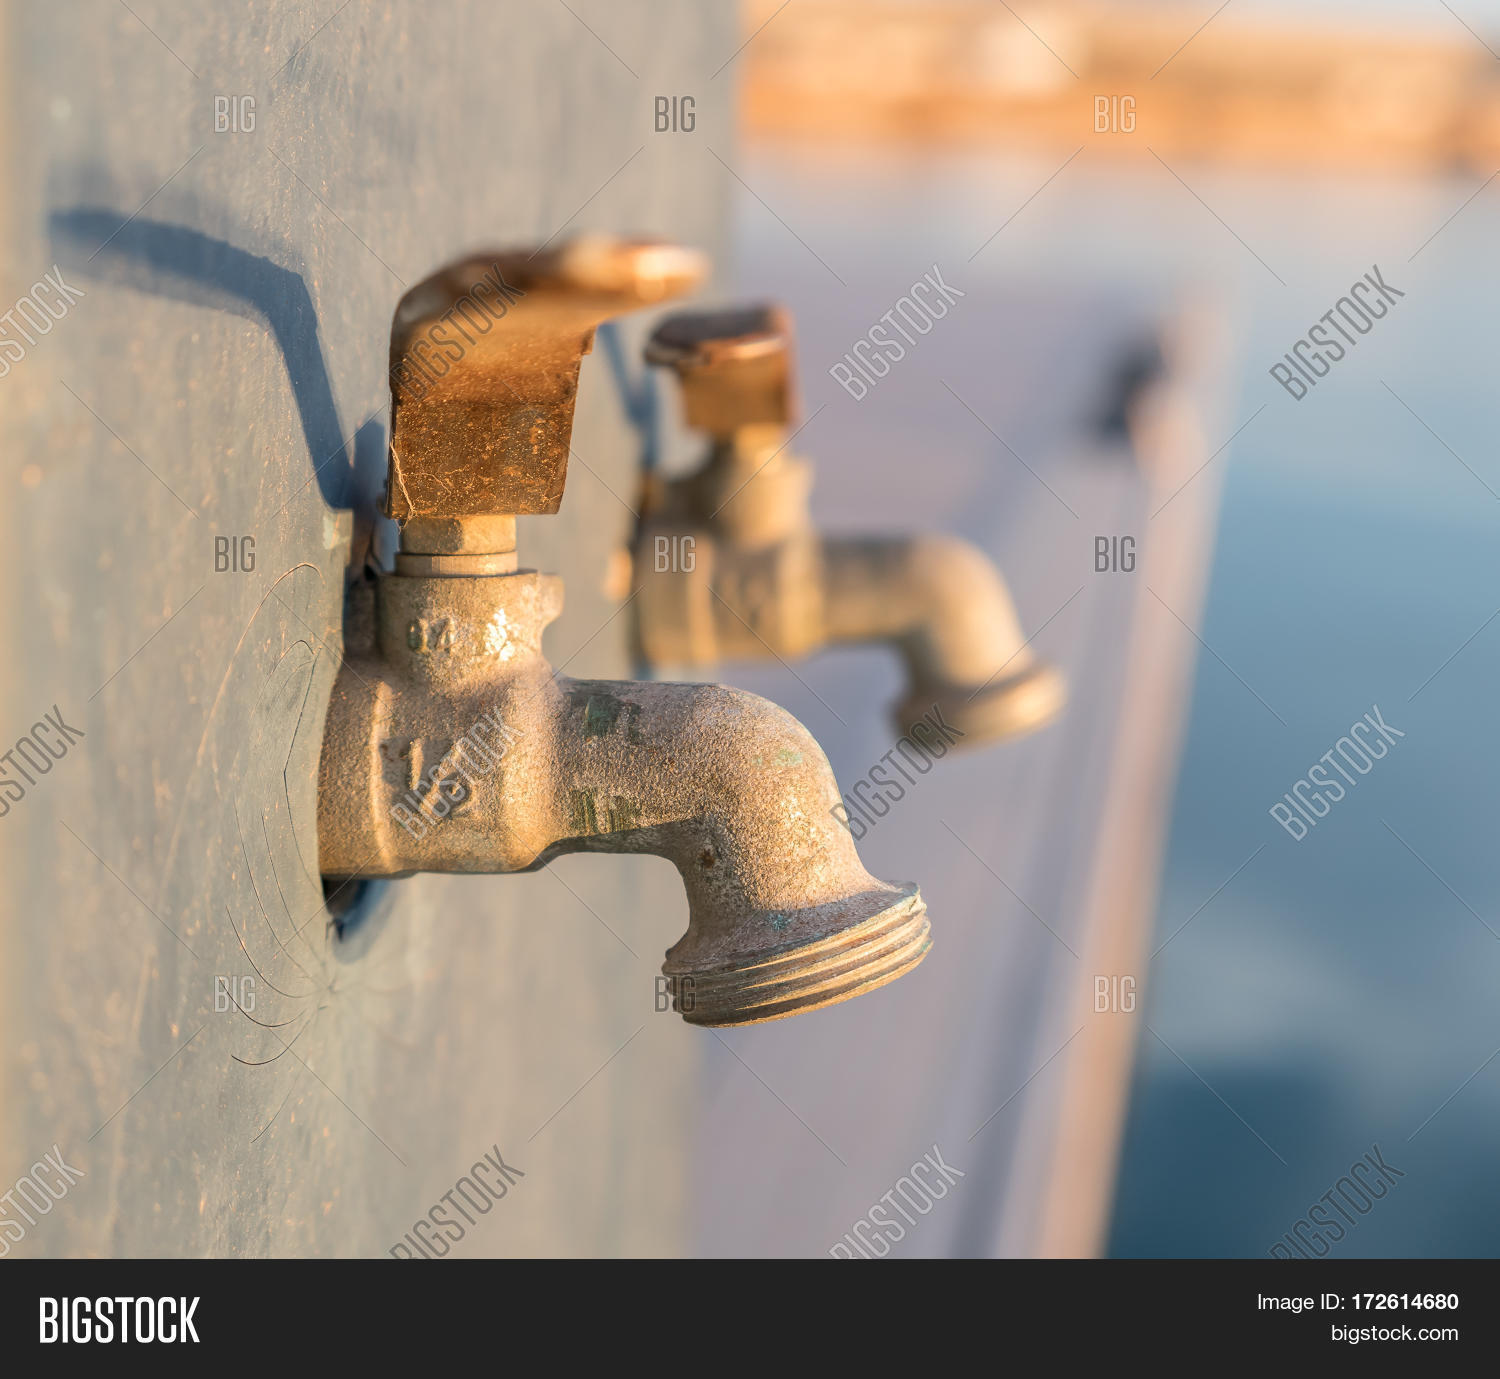 Outdoor Water Tap Image & Photo (Free Trial) | Bigstock